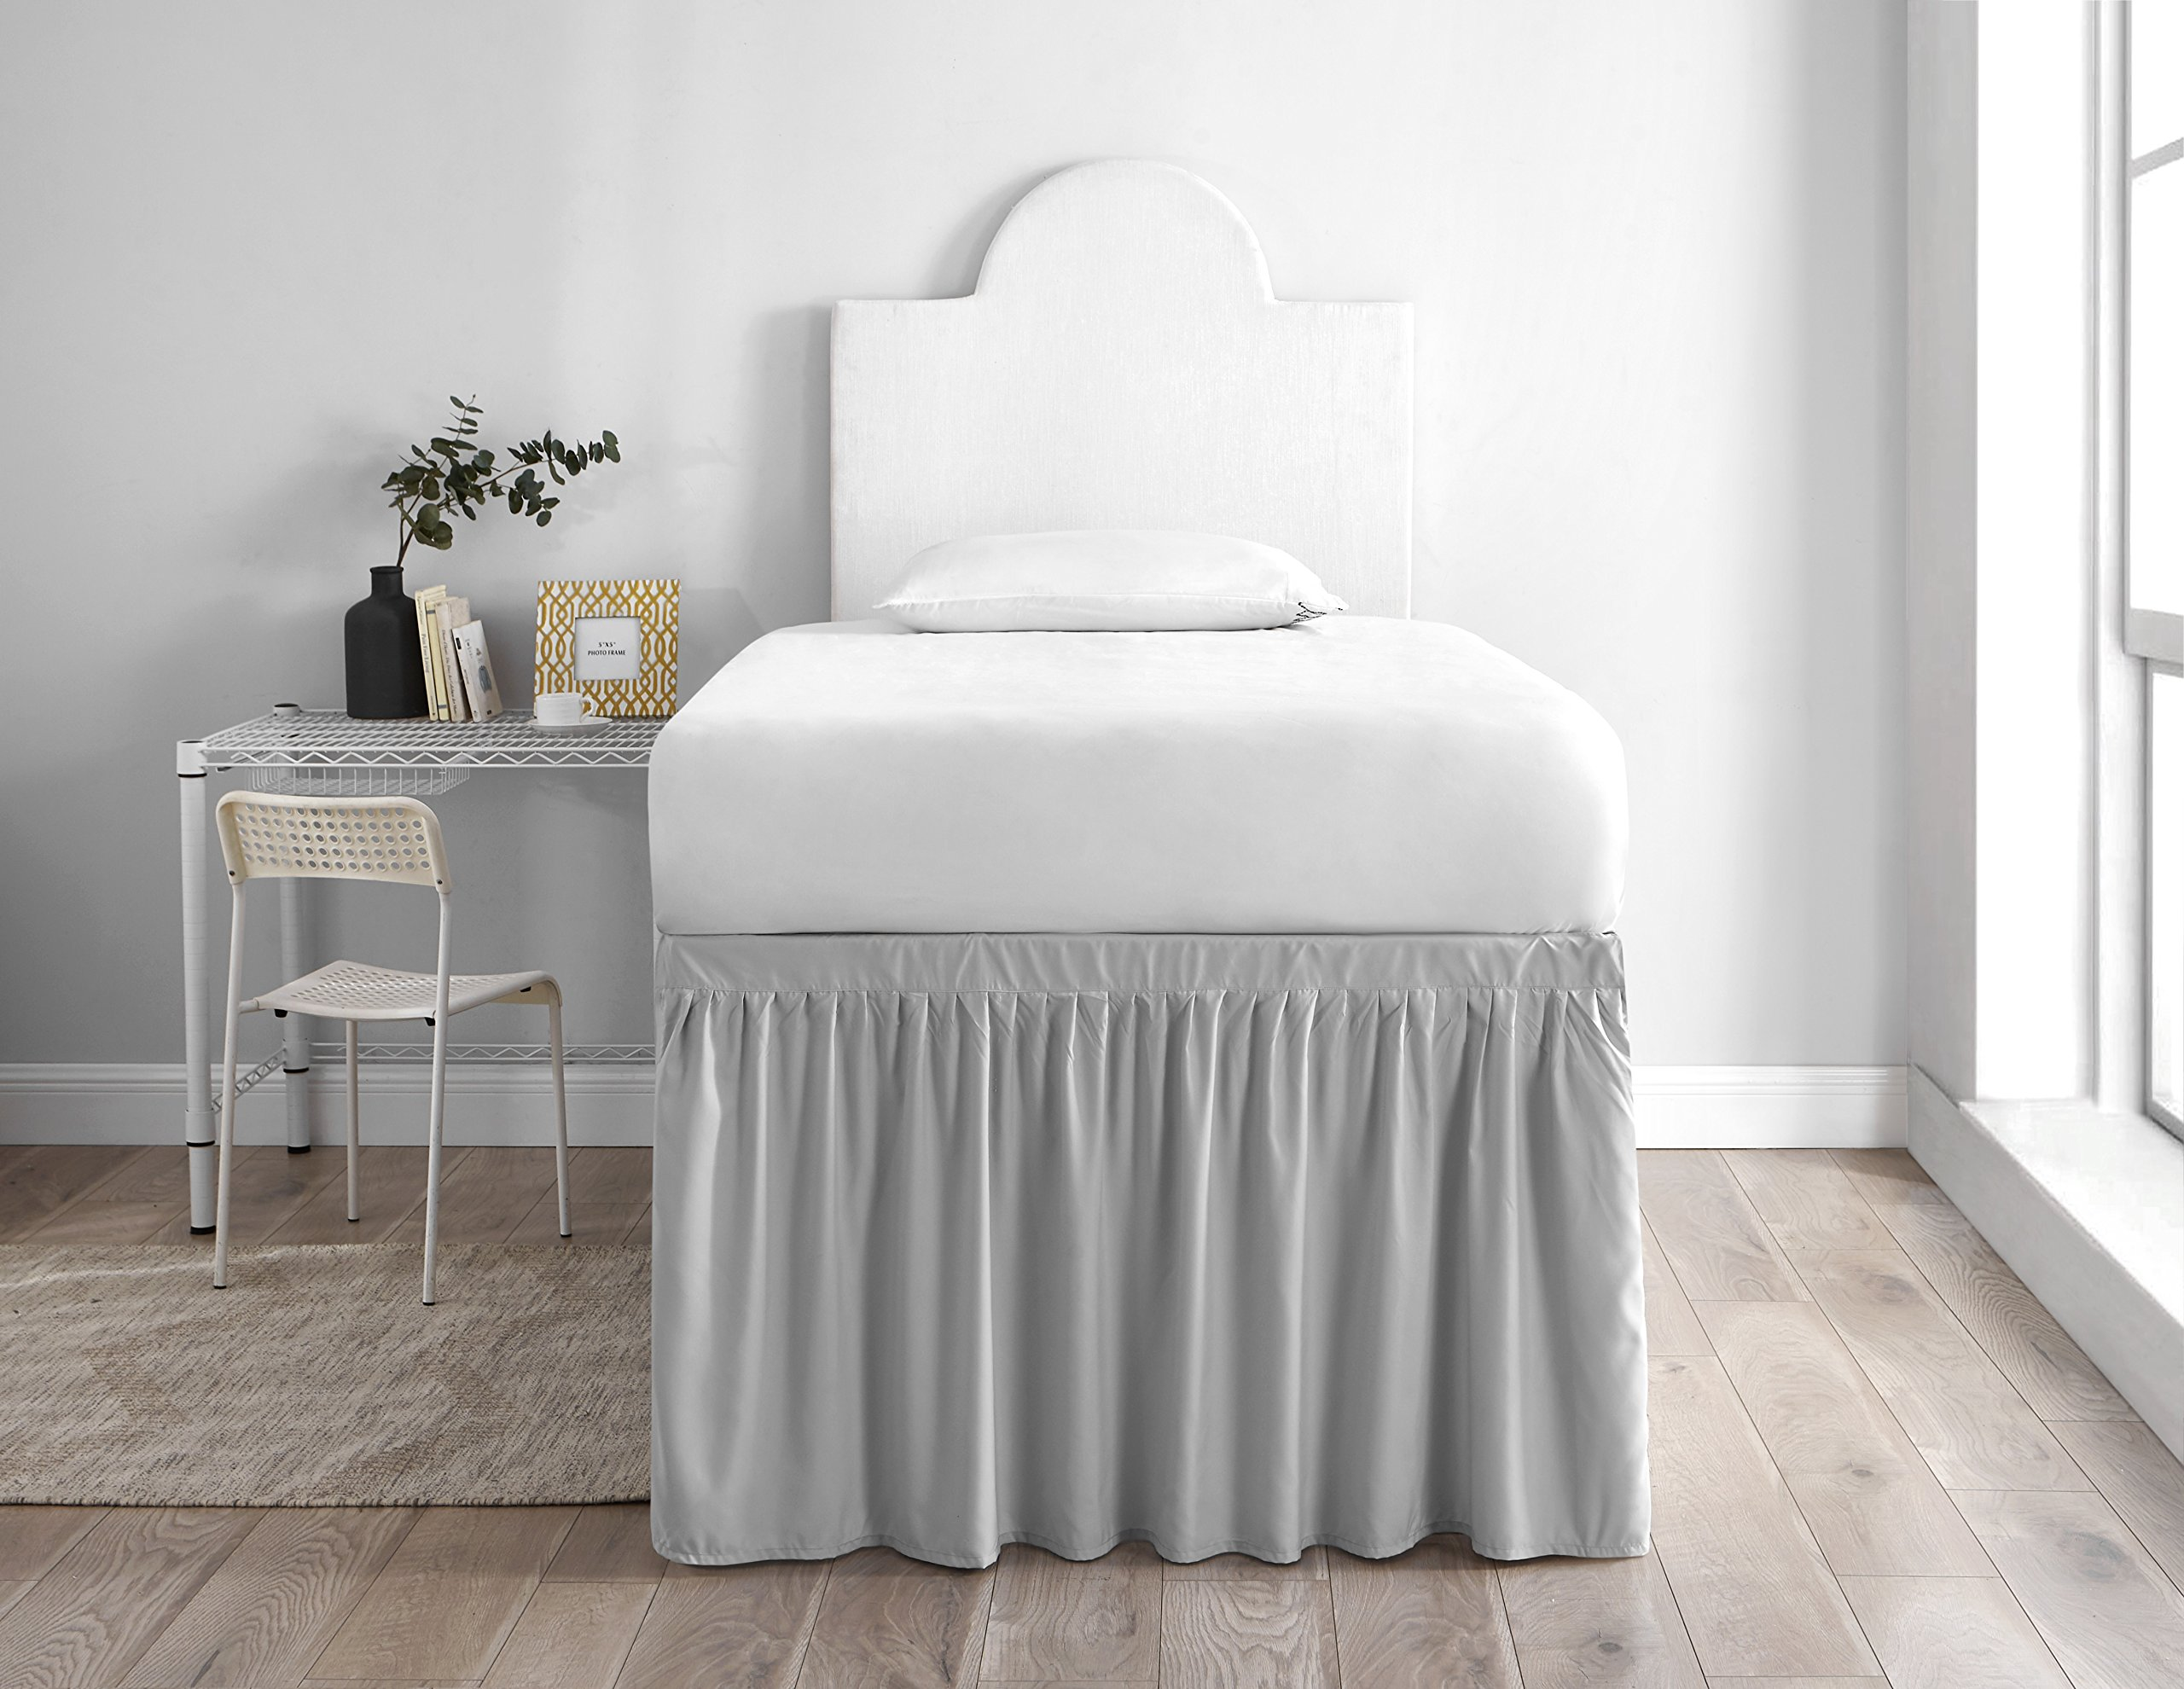 Dorm Sized Bed Skirt Panel with Ties (1 Panel) - Glacier Gray